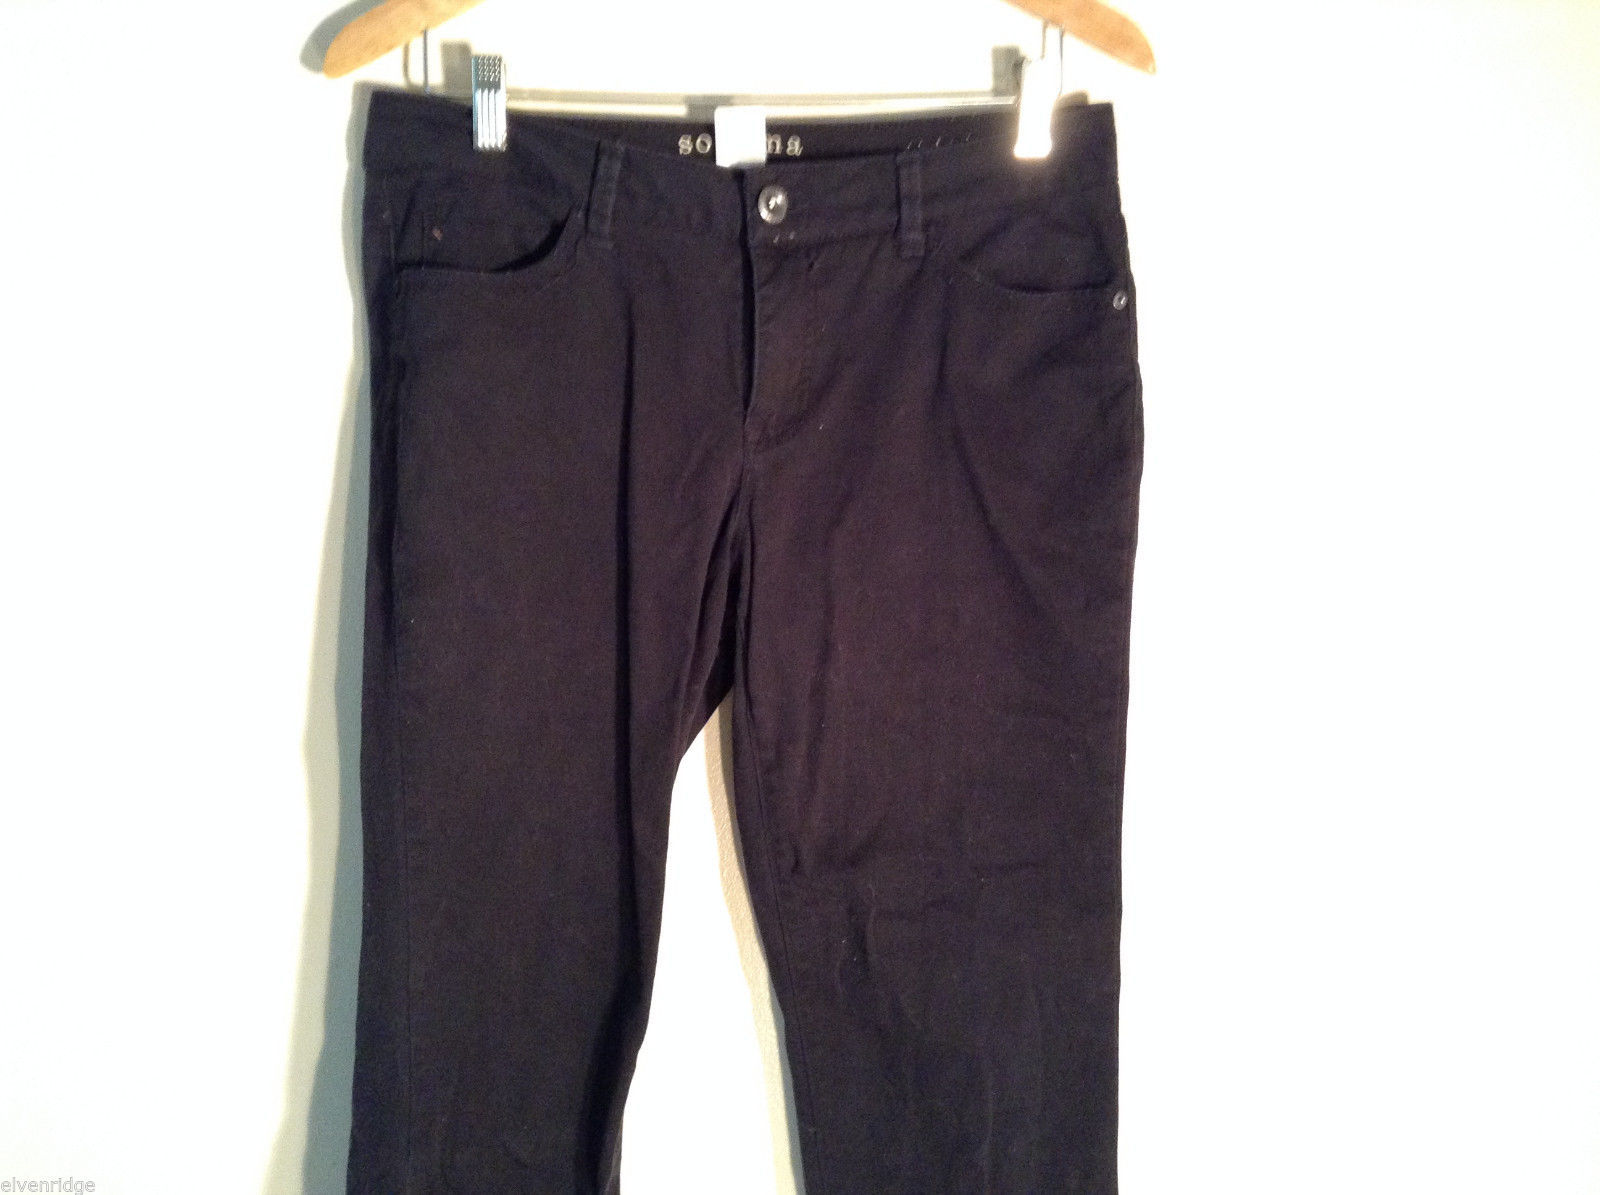 Sonoma Lifestyle Womens Black Original Straight Leg Size 10P Jeans Pants